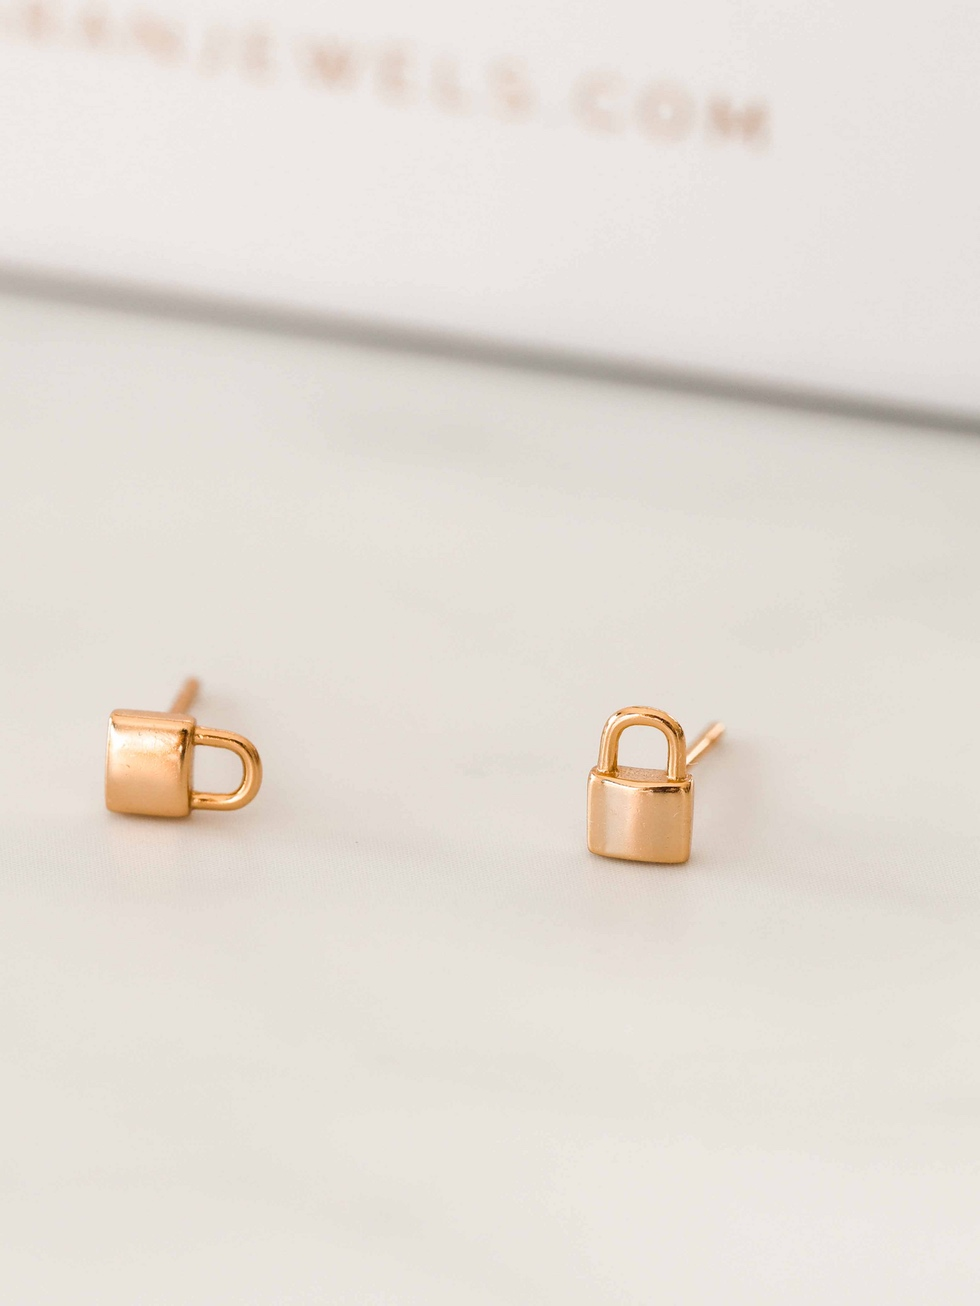 PIN PADLOCK gold stud earrings